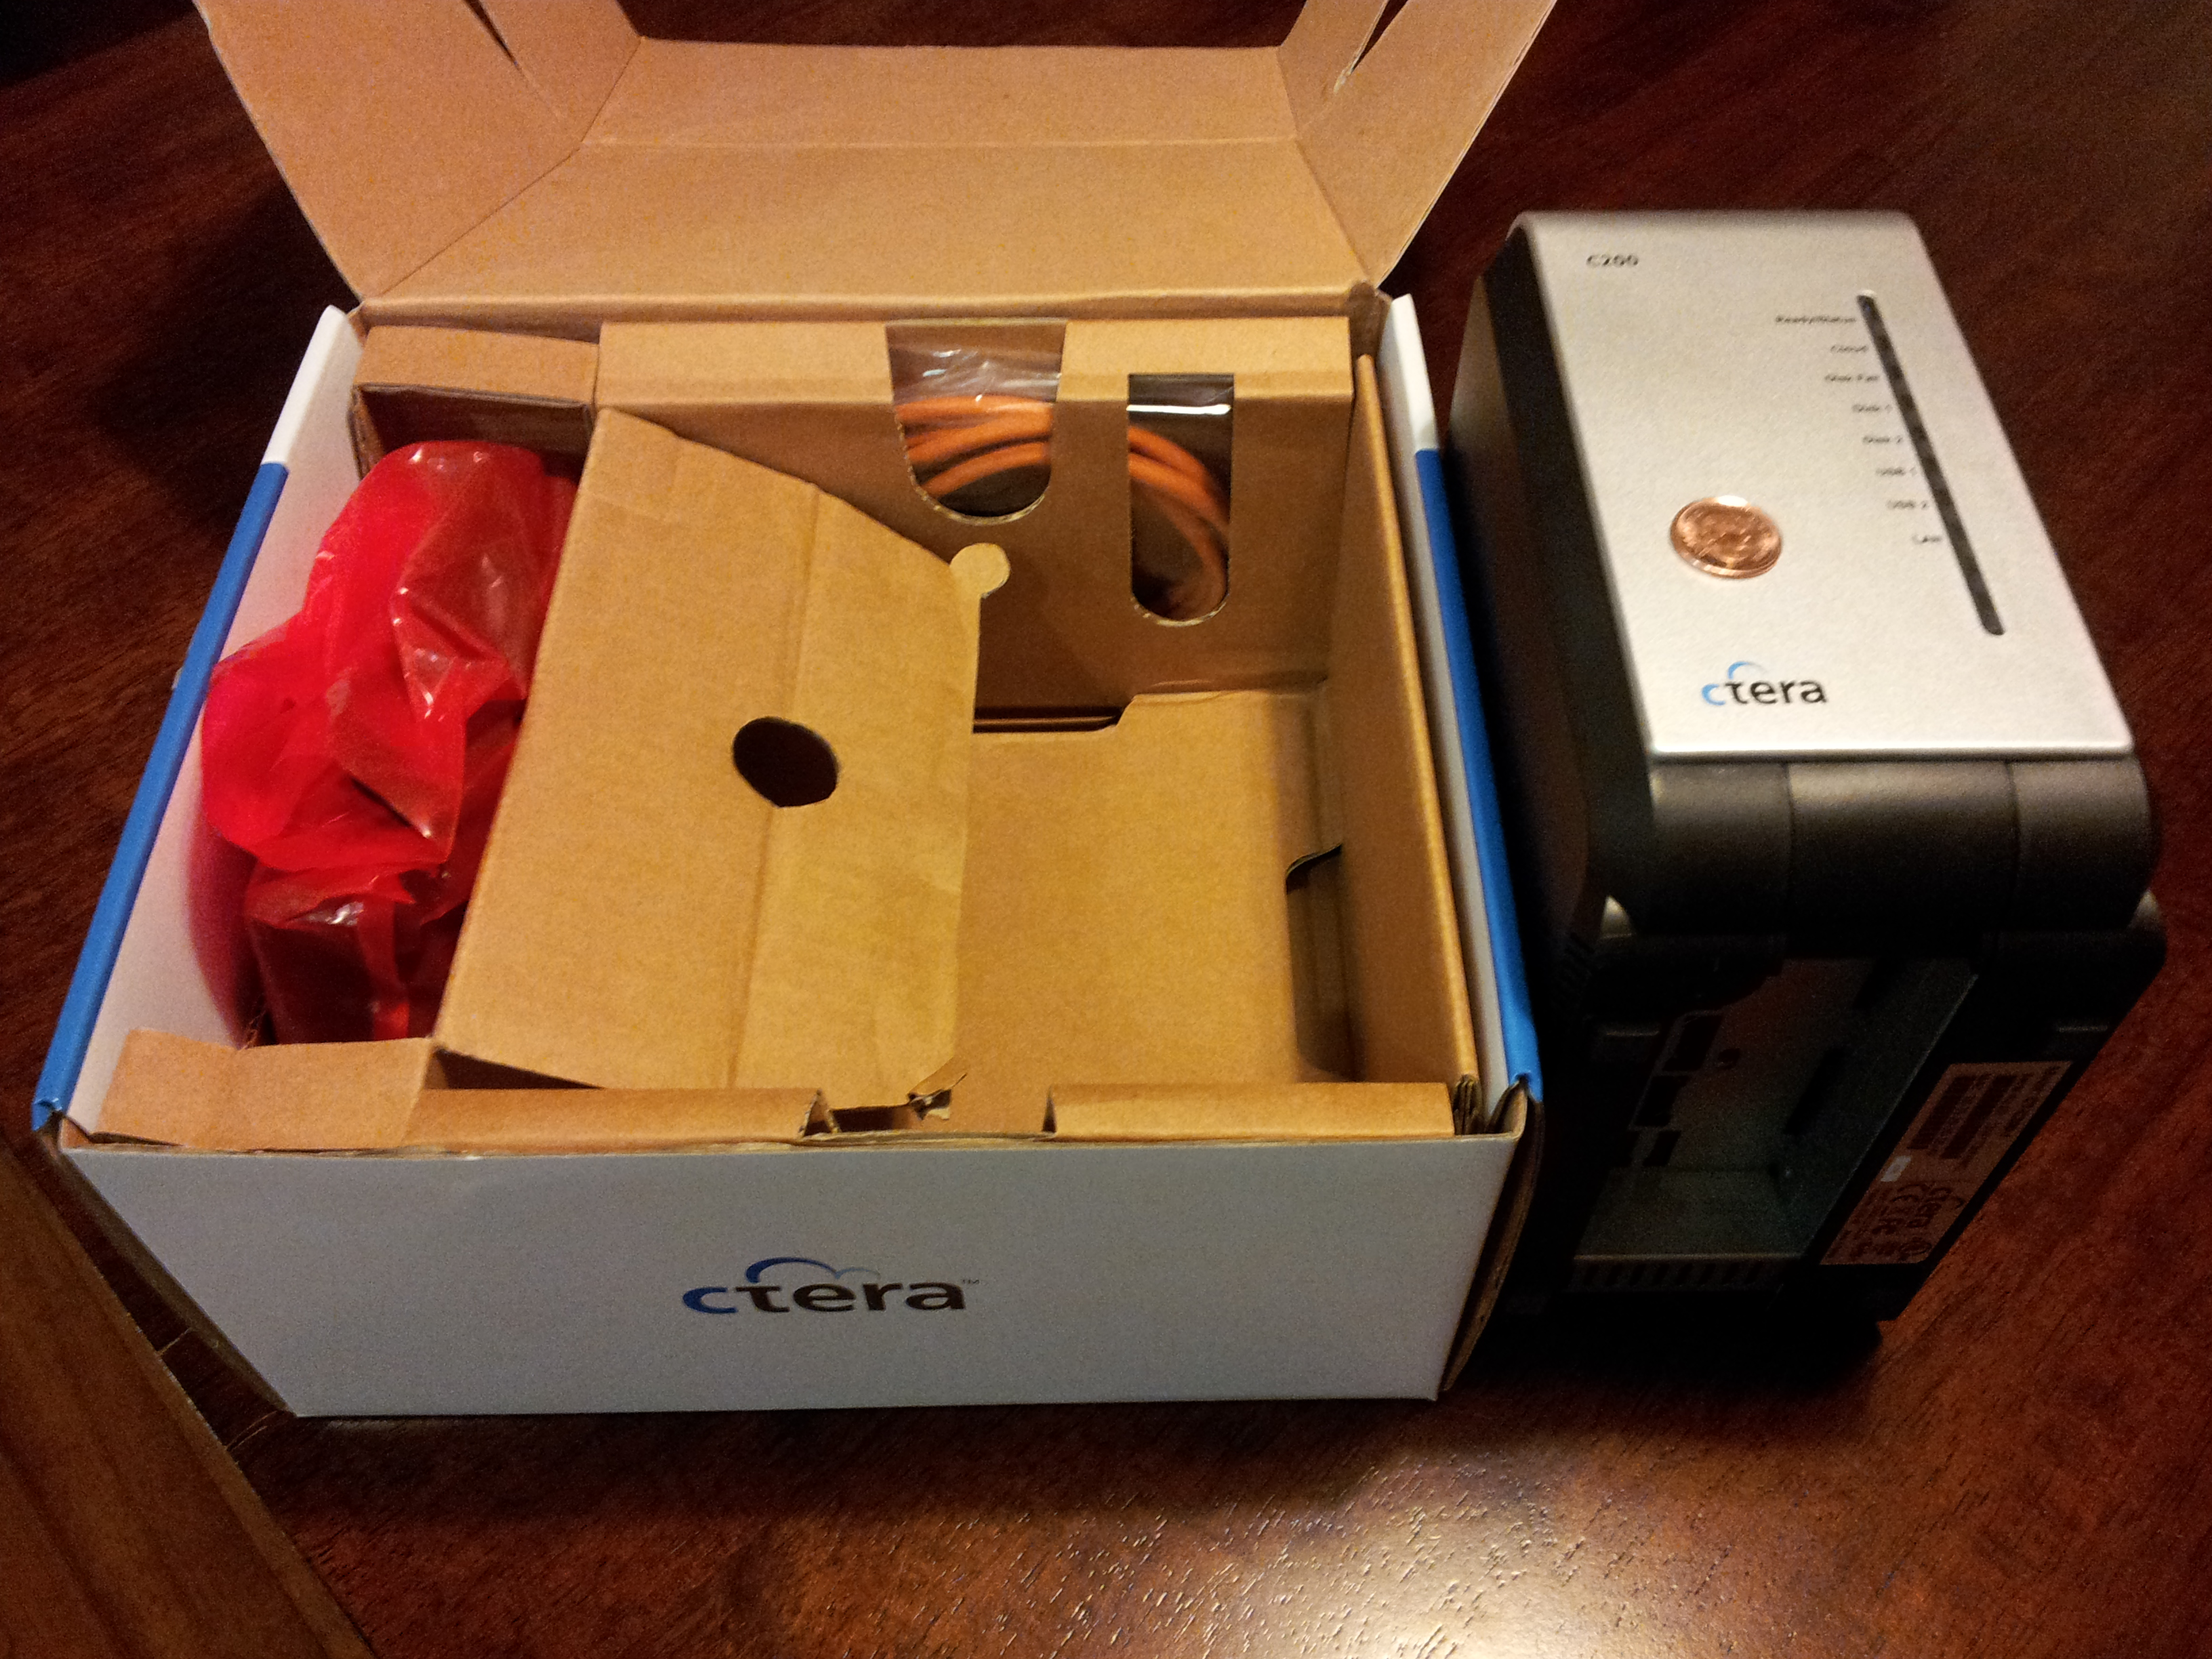 CTERA-C200-C400-C800-CloudPlug-Review-C200-Box-Contents